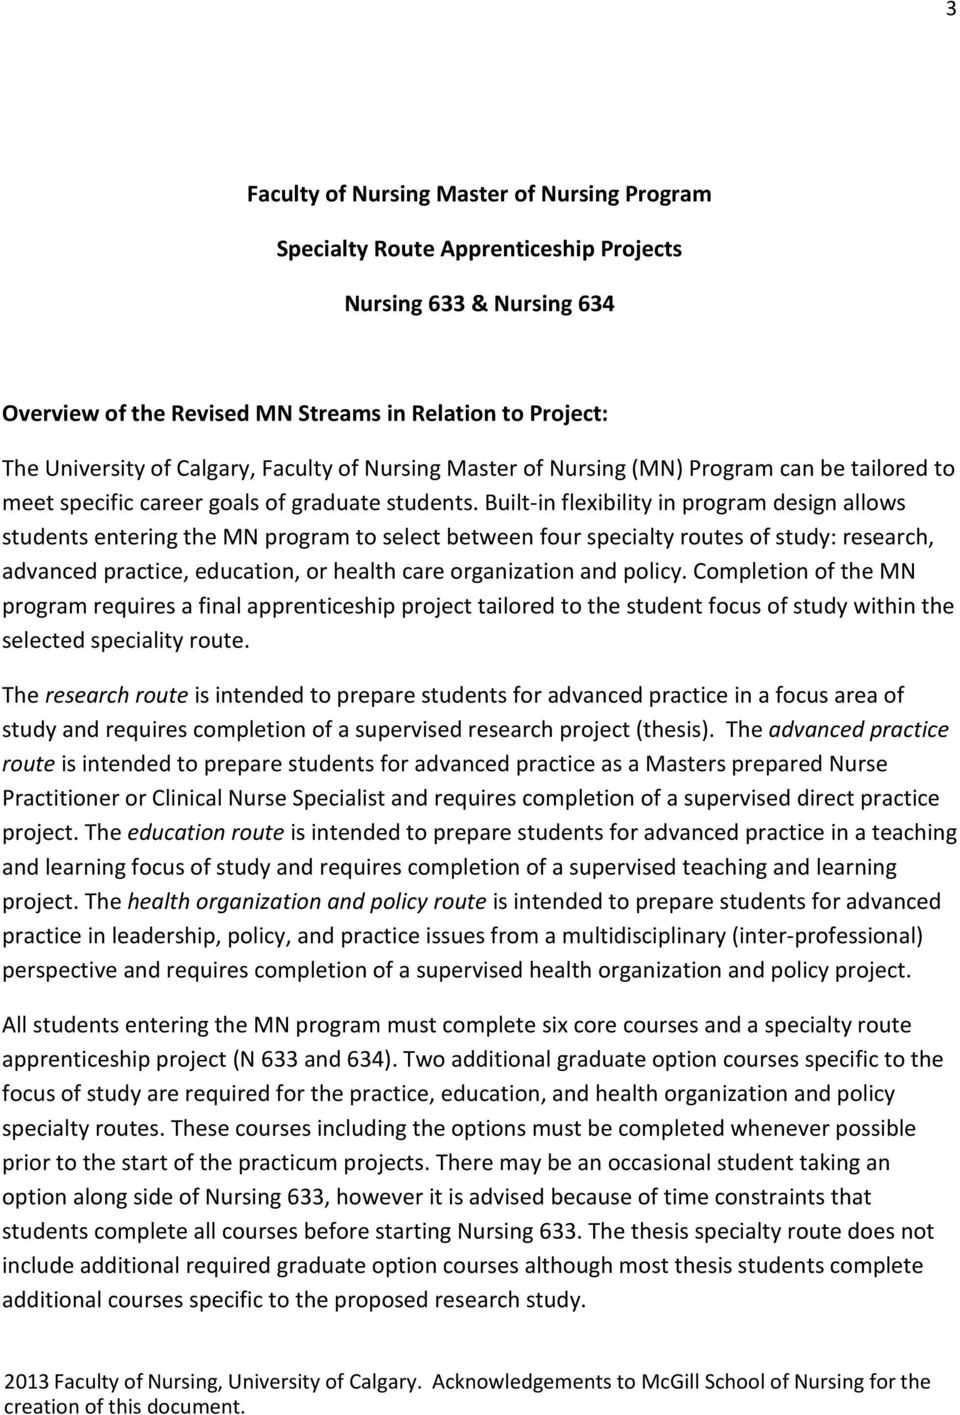 Built-in flexibility in program design allows students entering the MN program to select between four specialty routes of study: research, advanced practice, education, or health care organization